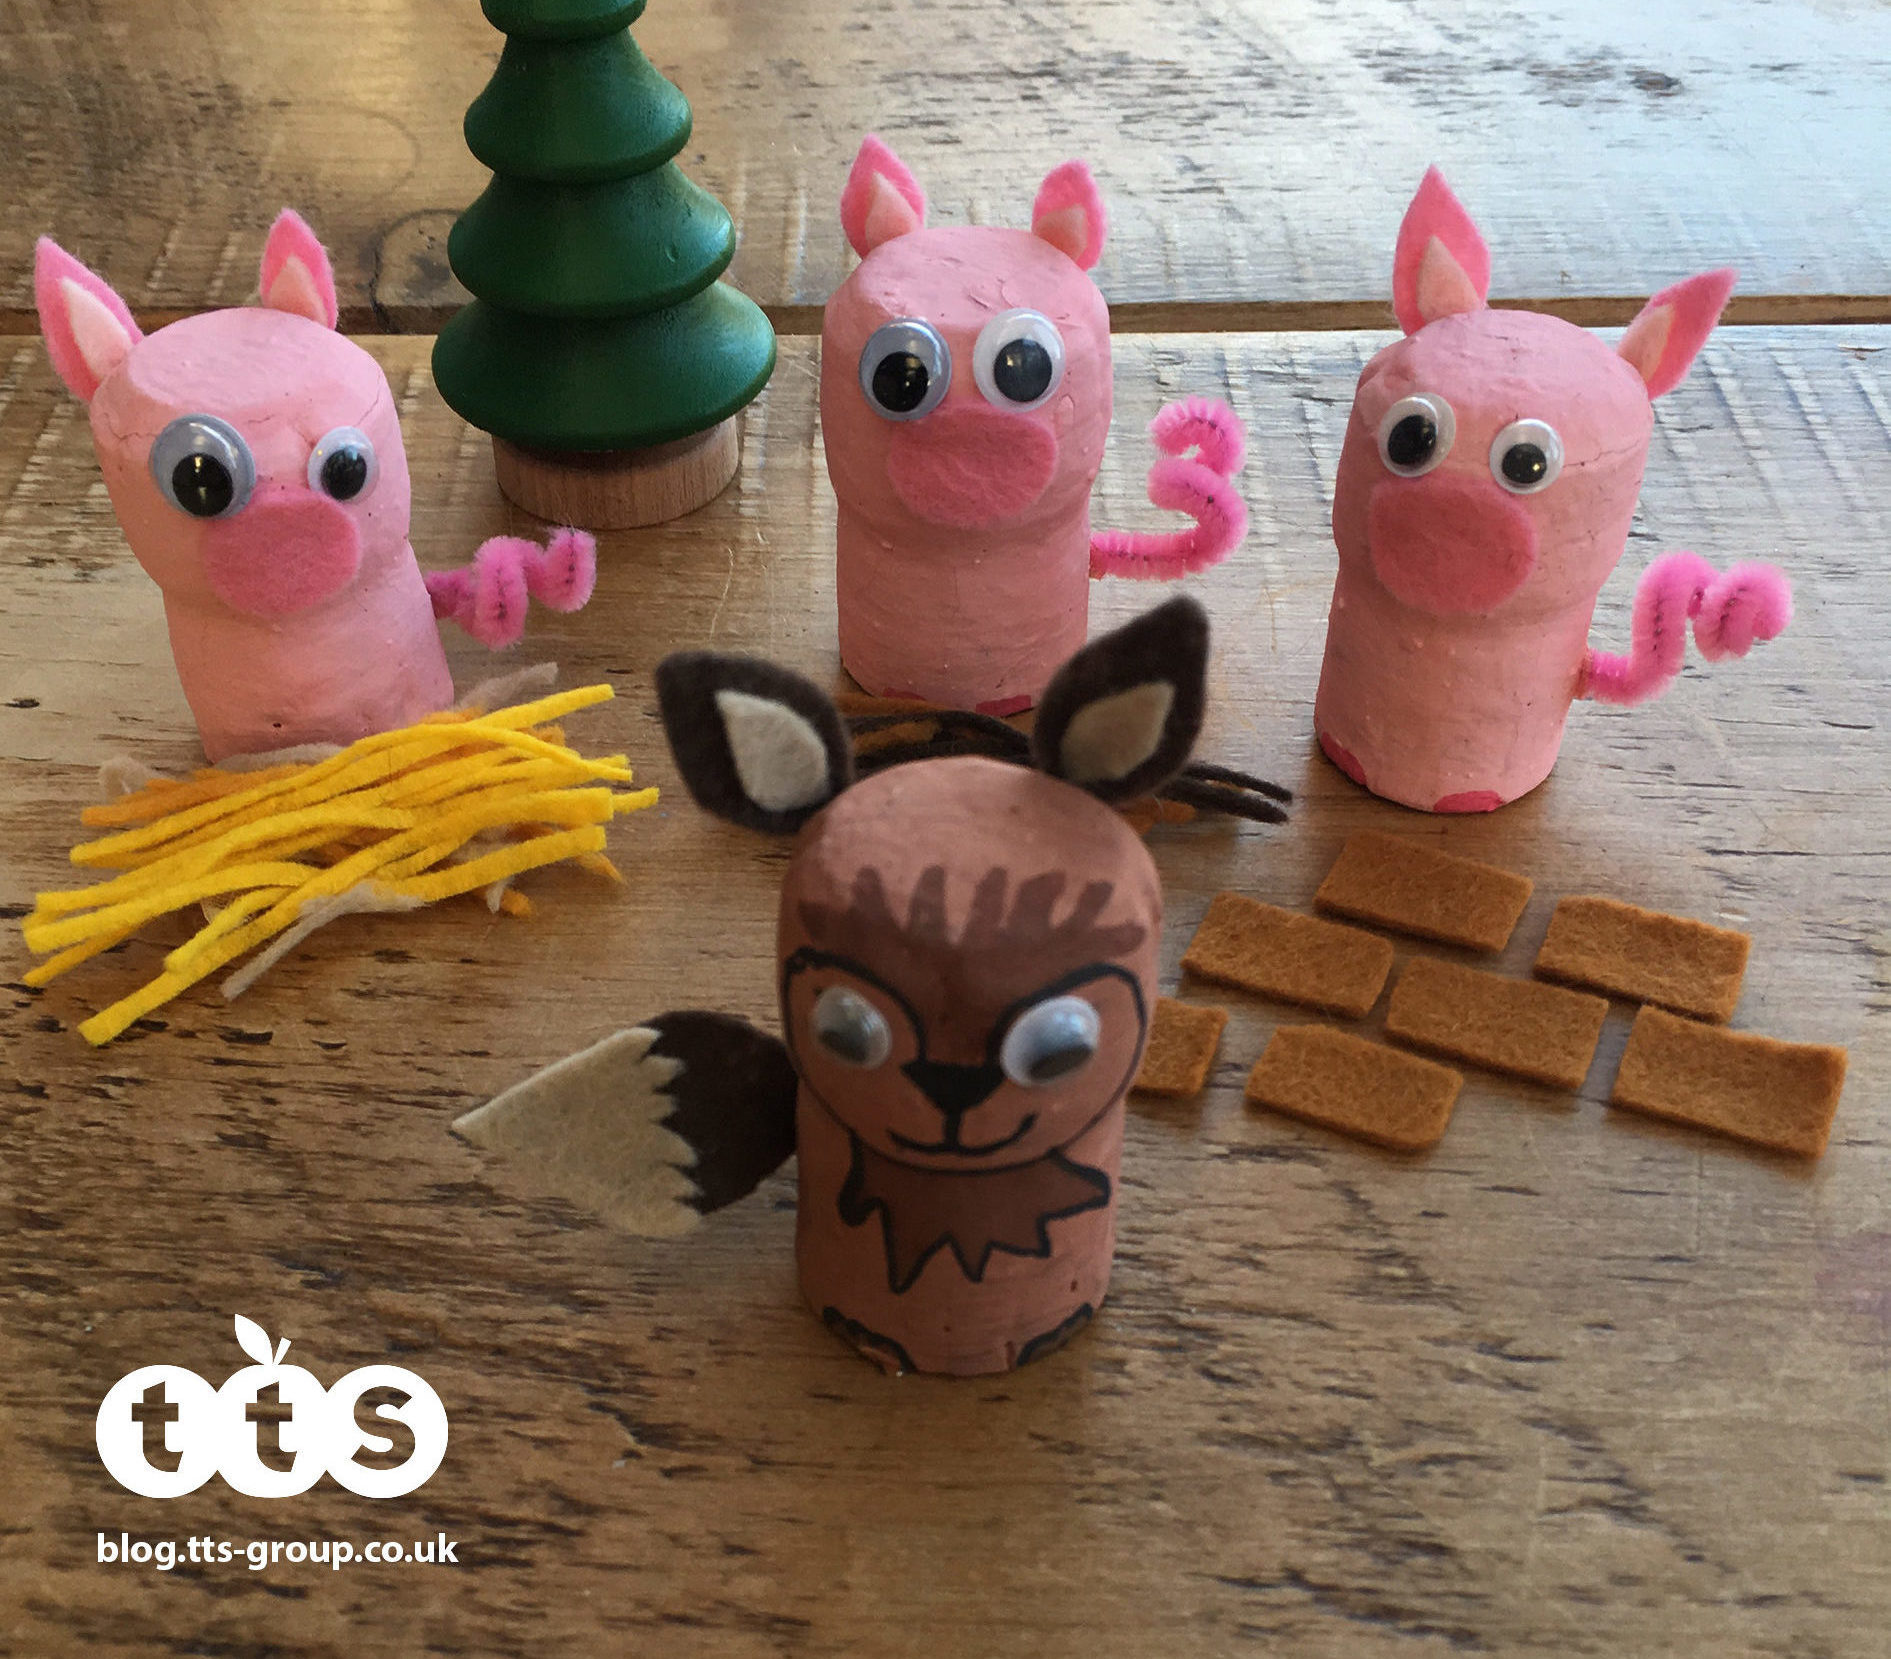 3 little pigs cork characters by Lottie Makes